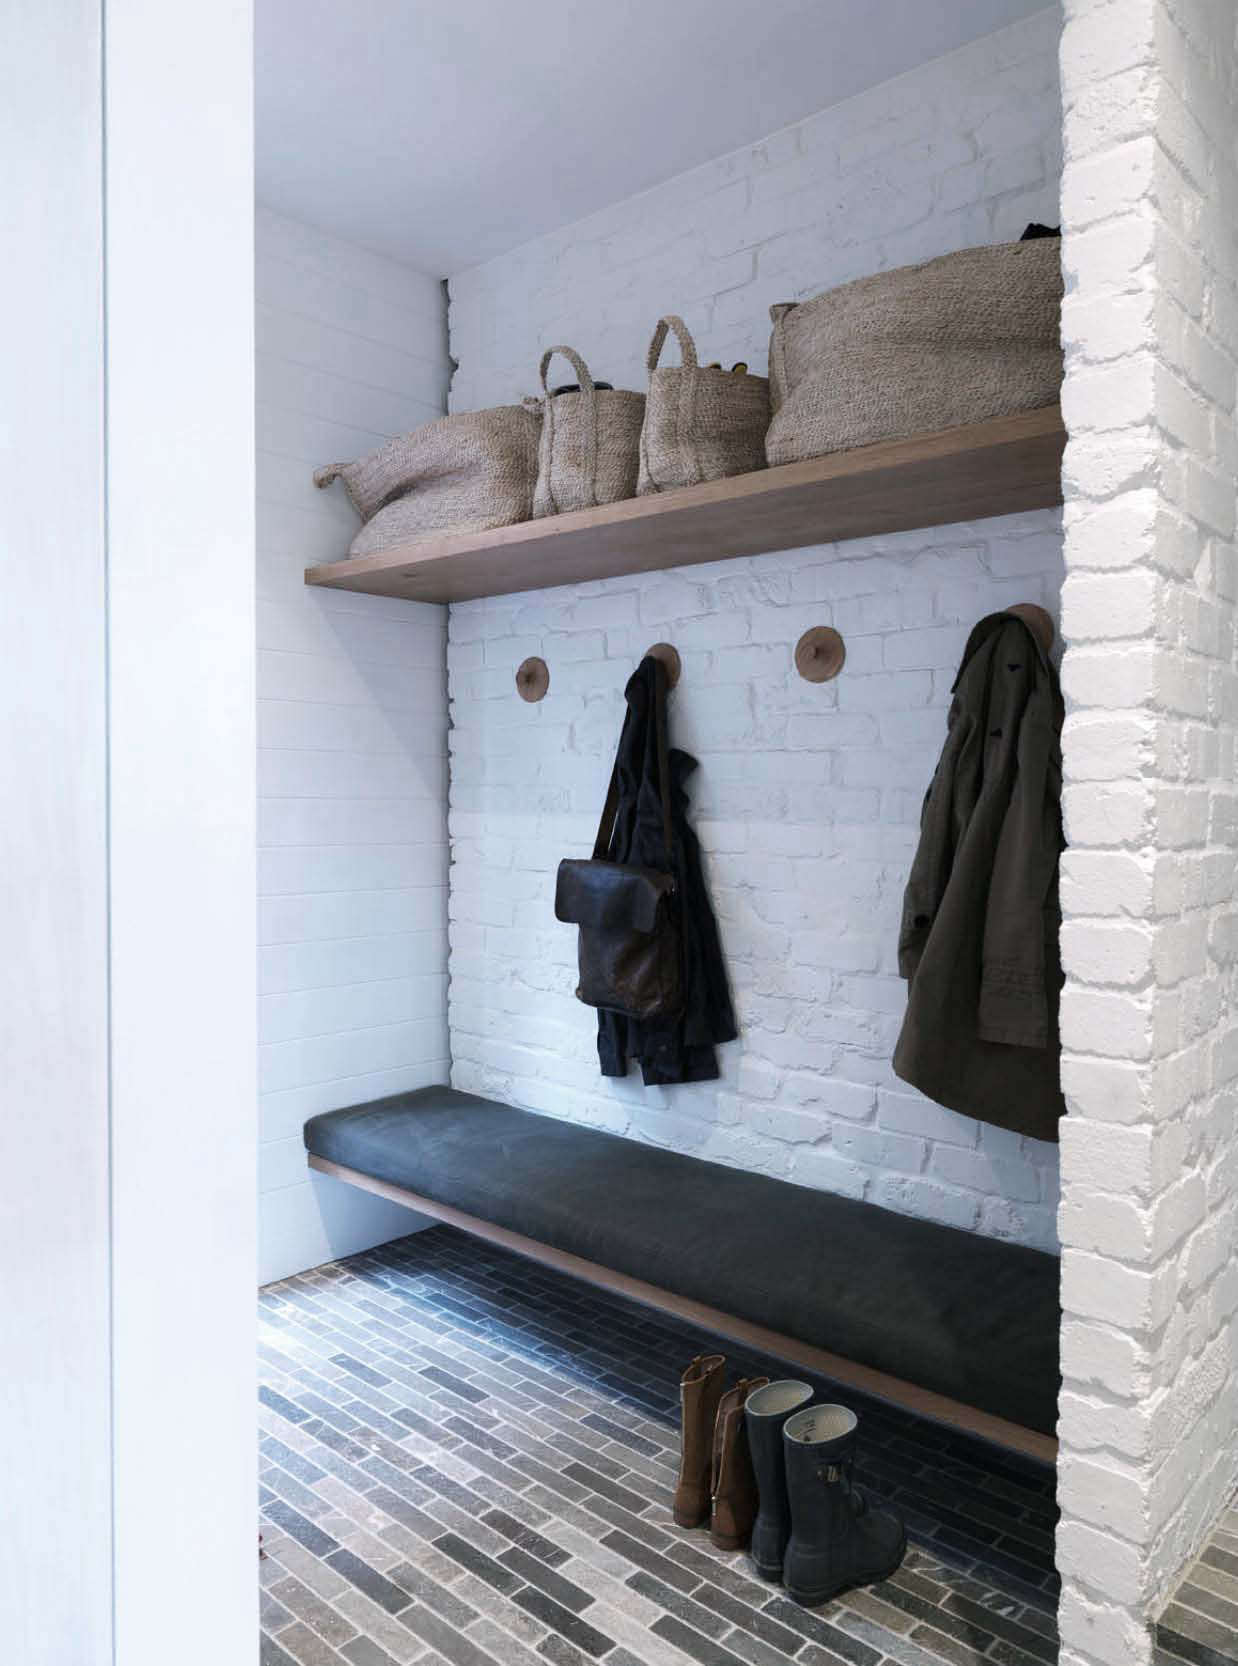 Exquisite Spanish What Is Anor Name A Mud Room Streamlined S Storage Mudroom Used As Daily Family This Mudroom Has A Bench curbed What Is A Mud Room